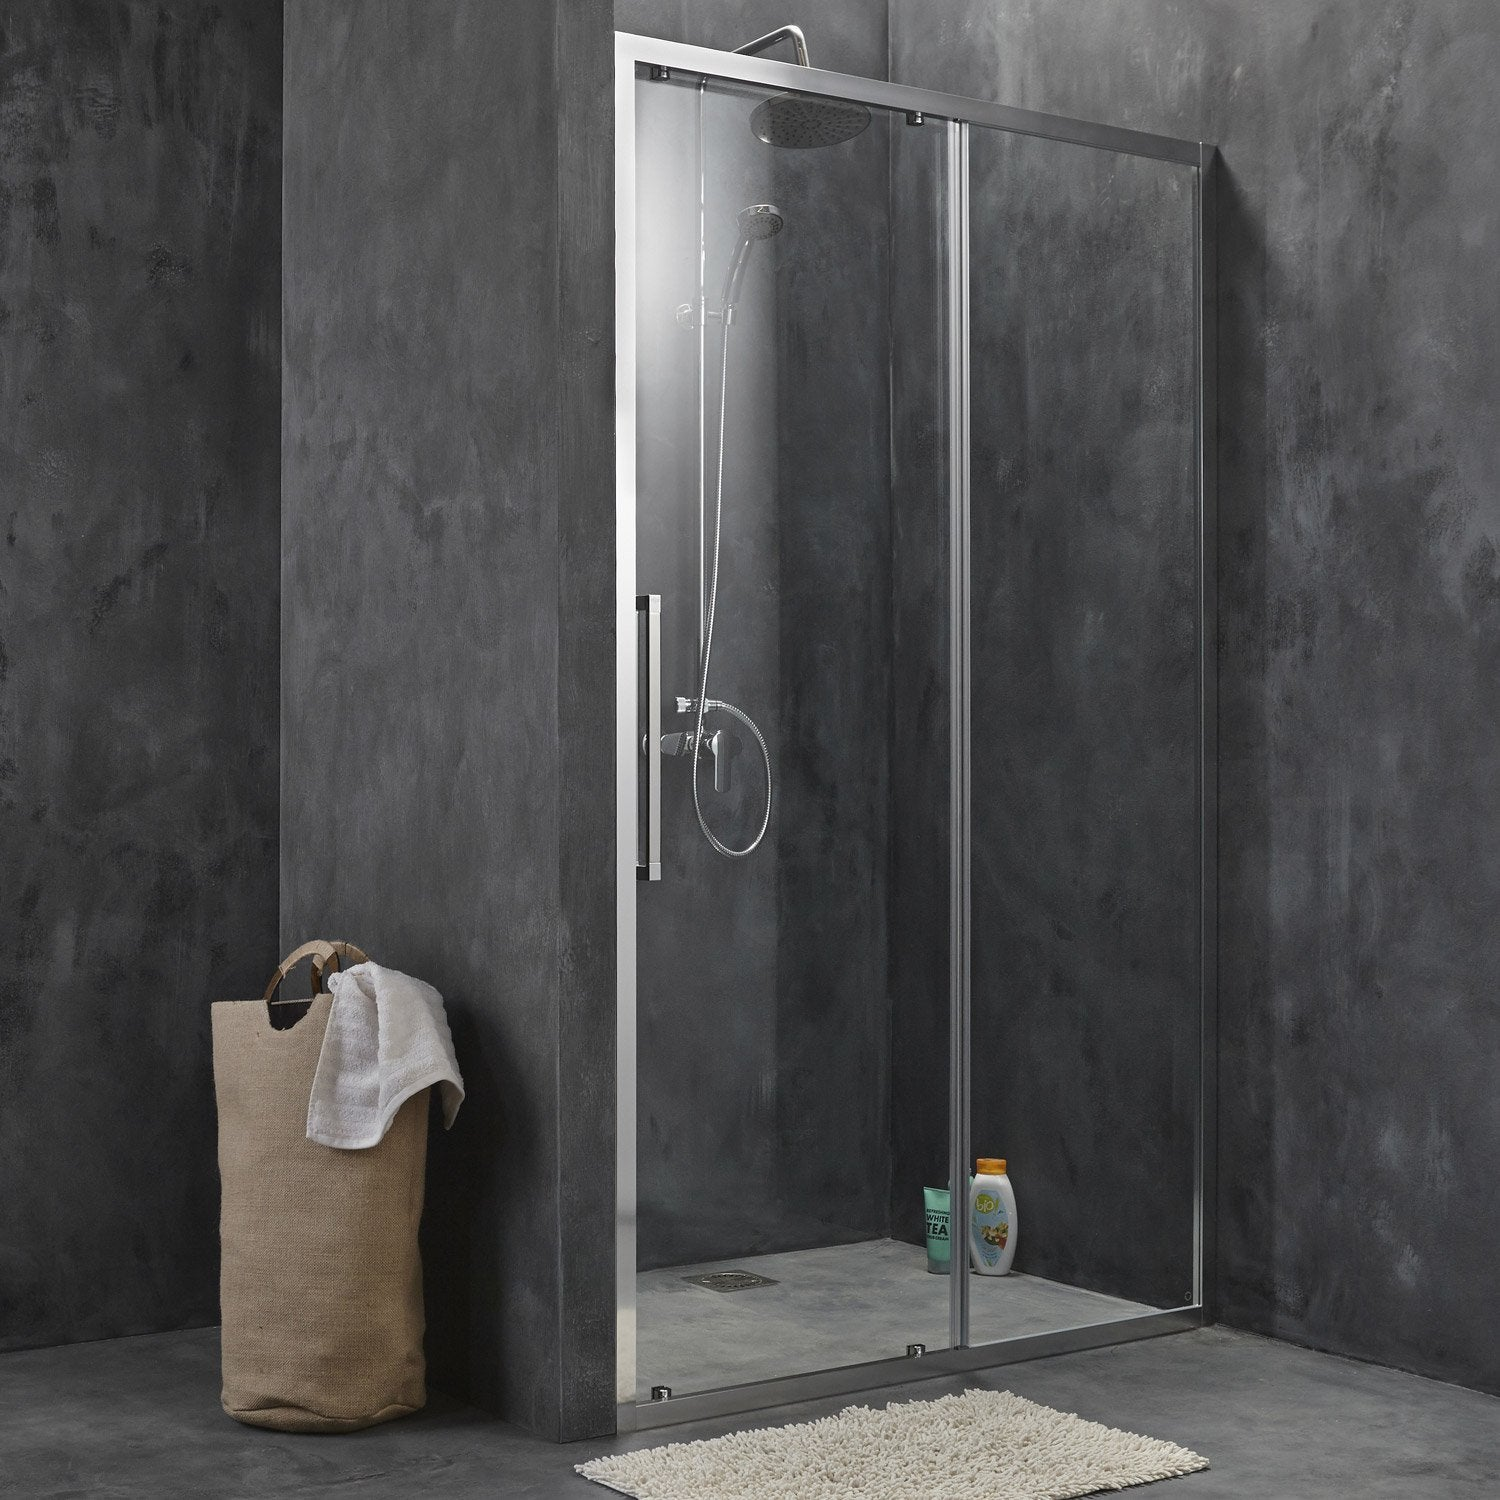 Porte de douche coulissante sensea purity 3 verre transparent chrom 100 cm - Leroy merlin porte en verre ...